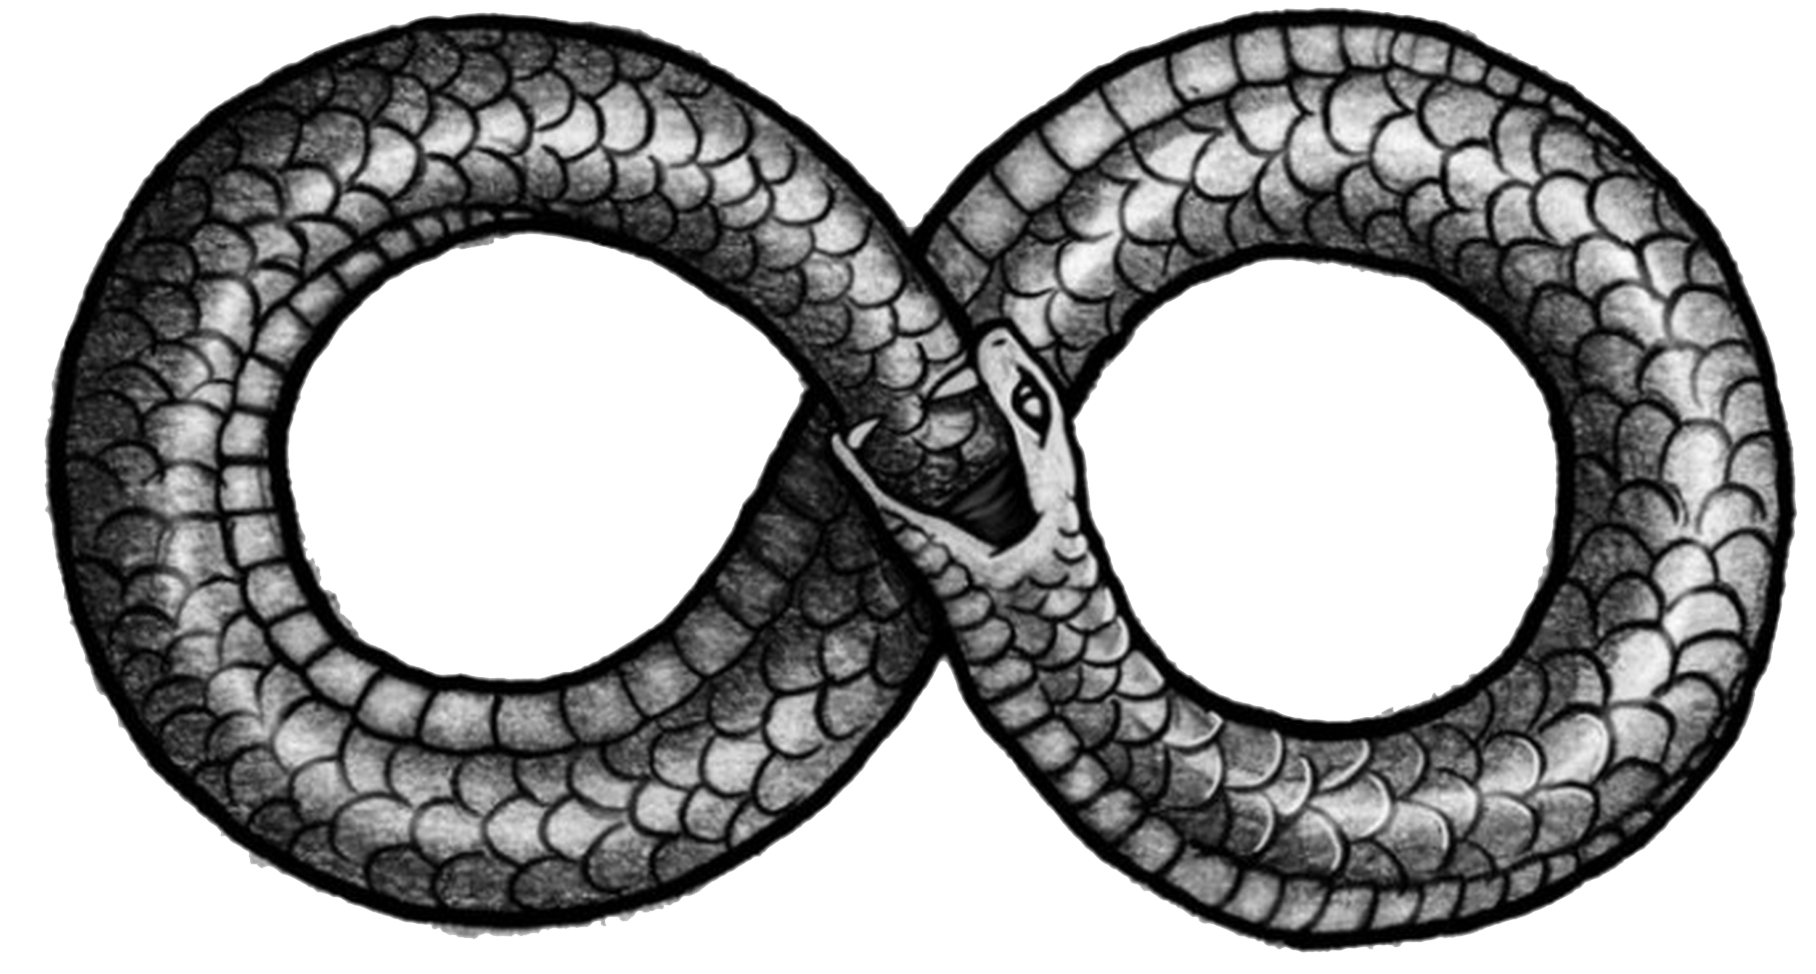 Snake infinity png. Ouroboros transparent images all